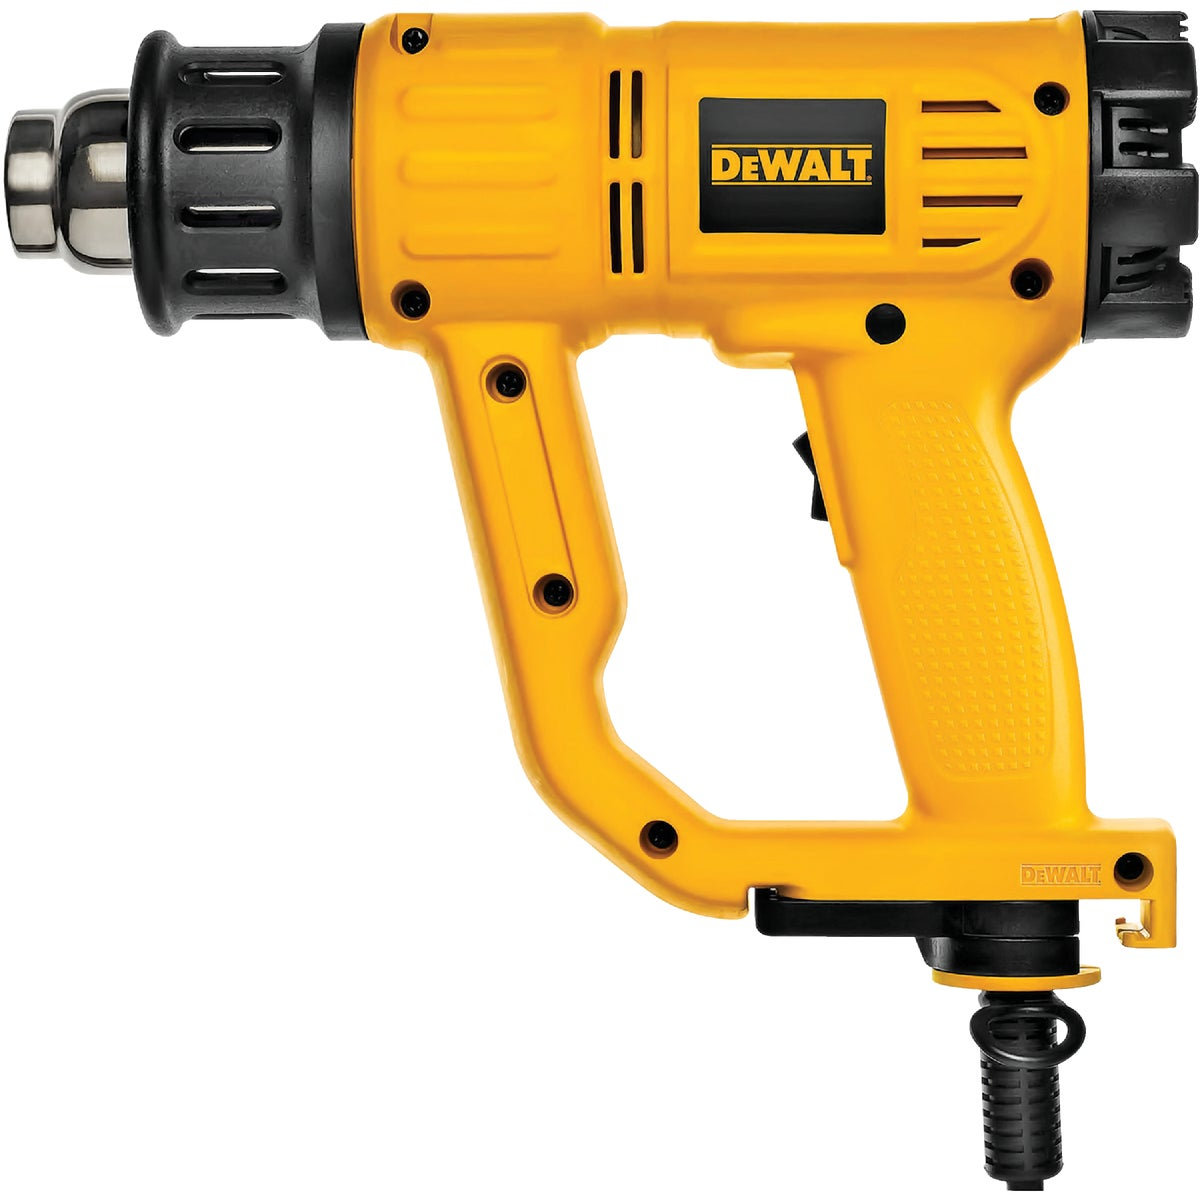 VARIABLE TEMP HEAT GUN - D26950 by DeWalt